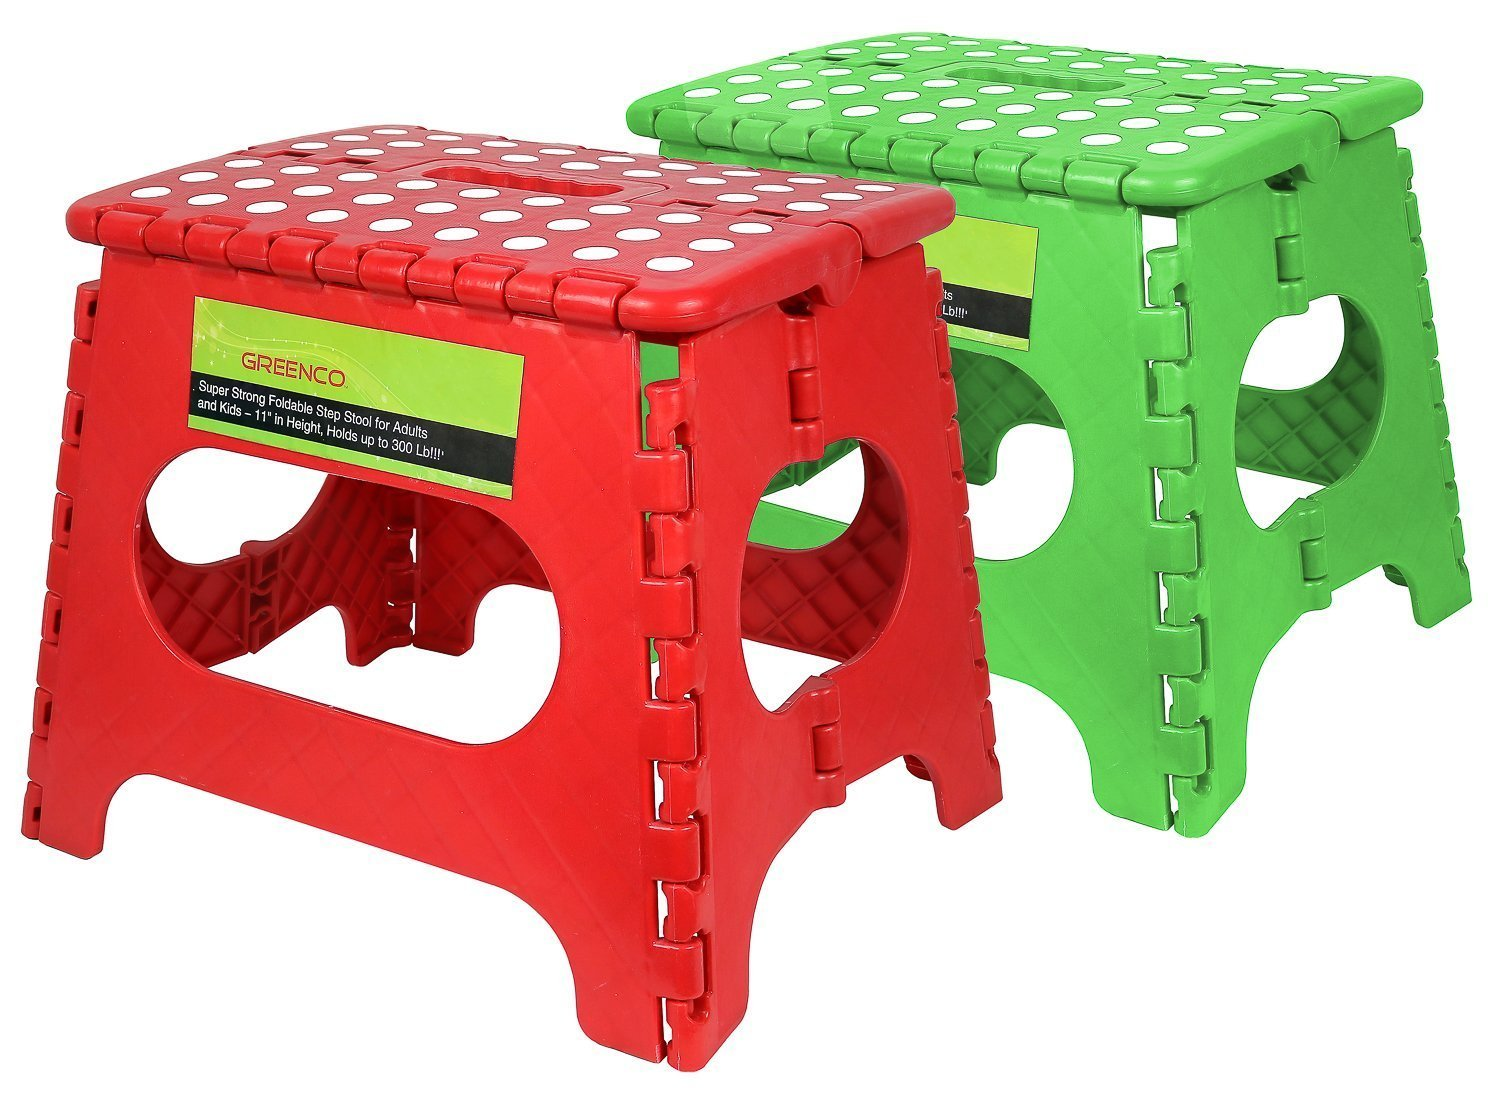 Greenco Super Strong Foldable Step Stool for Adults and Kids - 11 Inches in Height, Holds up to 300 Lb (2 Pack - Red, Green)